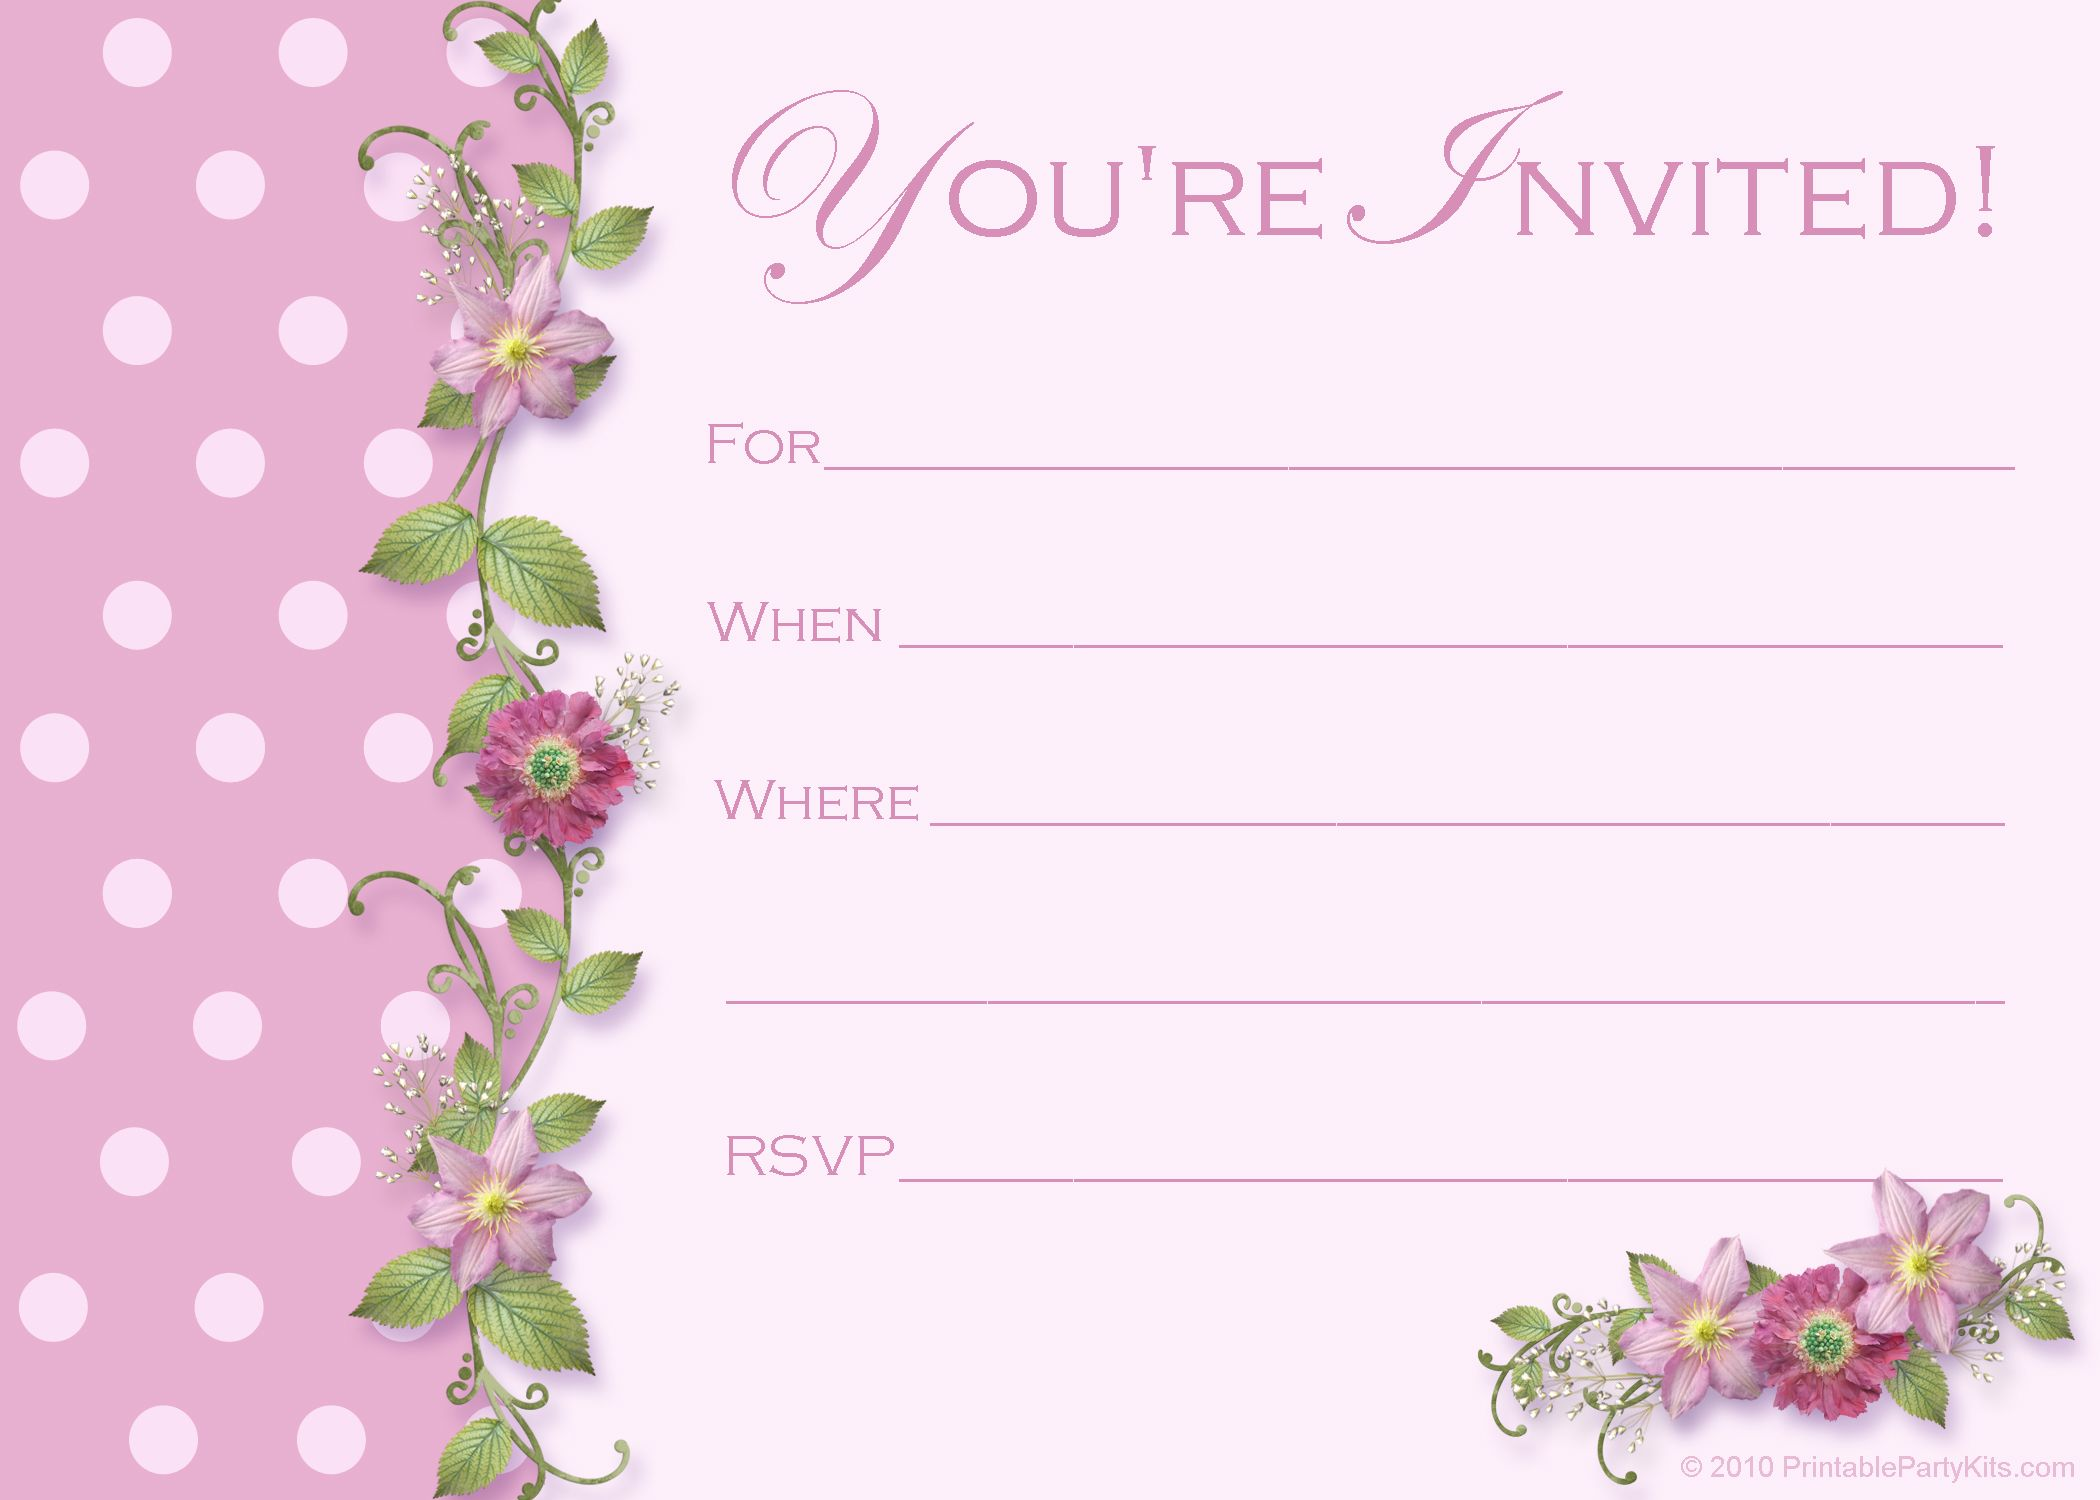 Unique Birthday Invitation Templates Ideas On Pinterest Free - Birthday invitation designs for adults